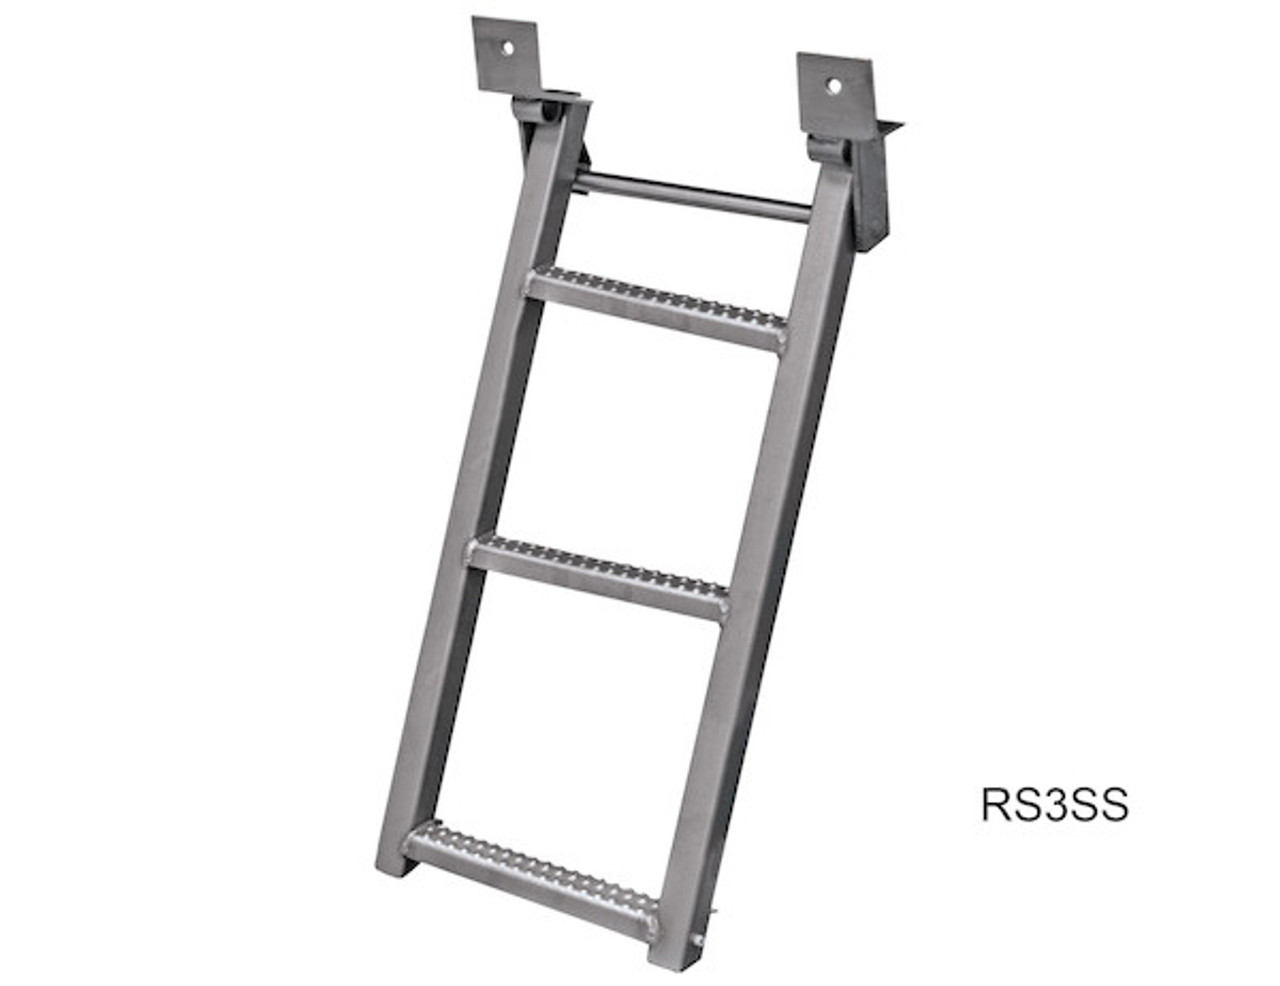 RS3SS Buyers 3-Rung Stainless Retractable Truck Steps With Nonslip Tread - 17.38 X 35 Inch